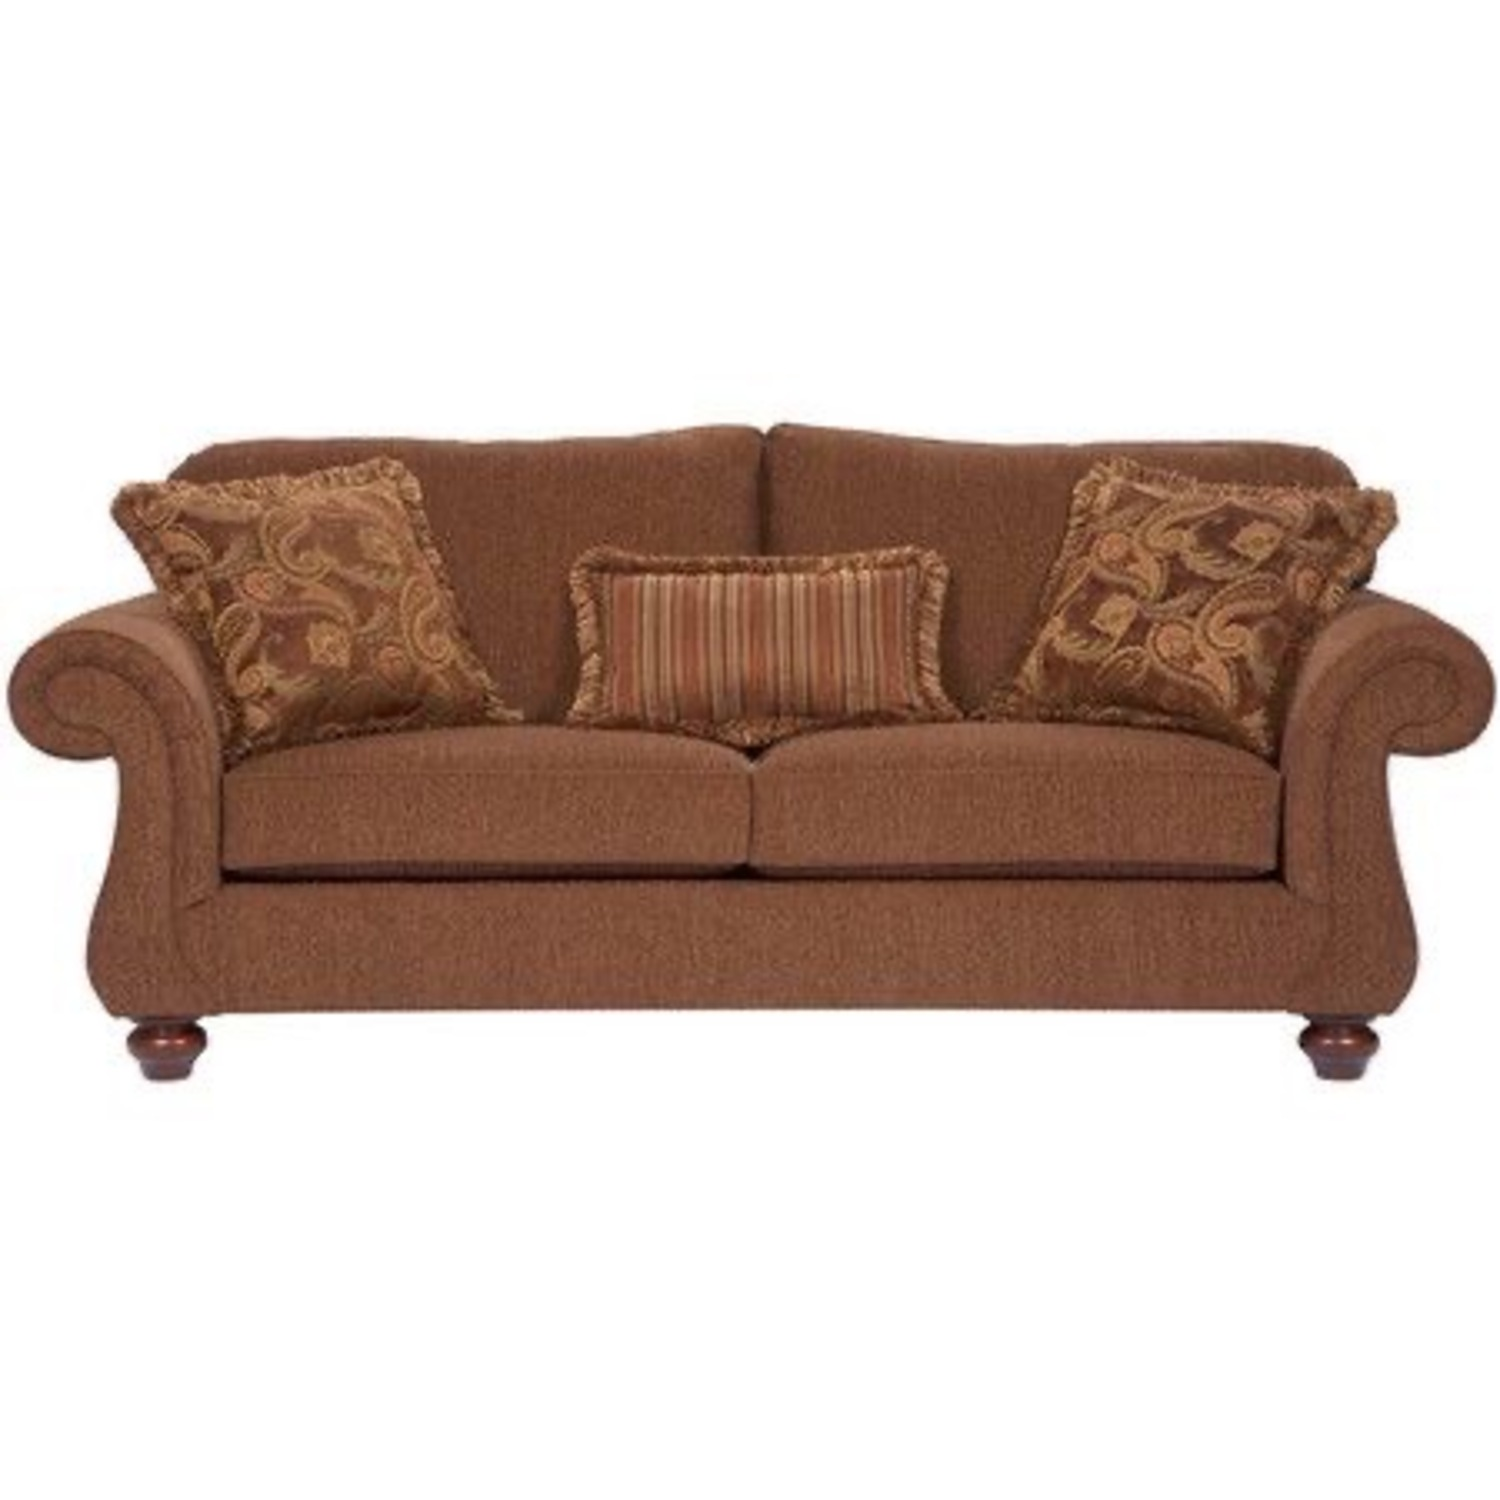 Broyhill Sofas 2 available - image-2